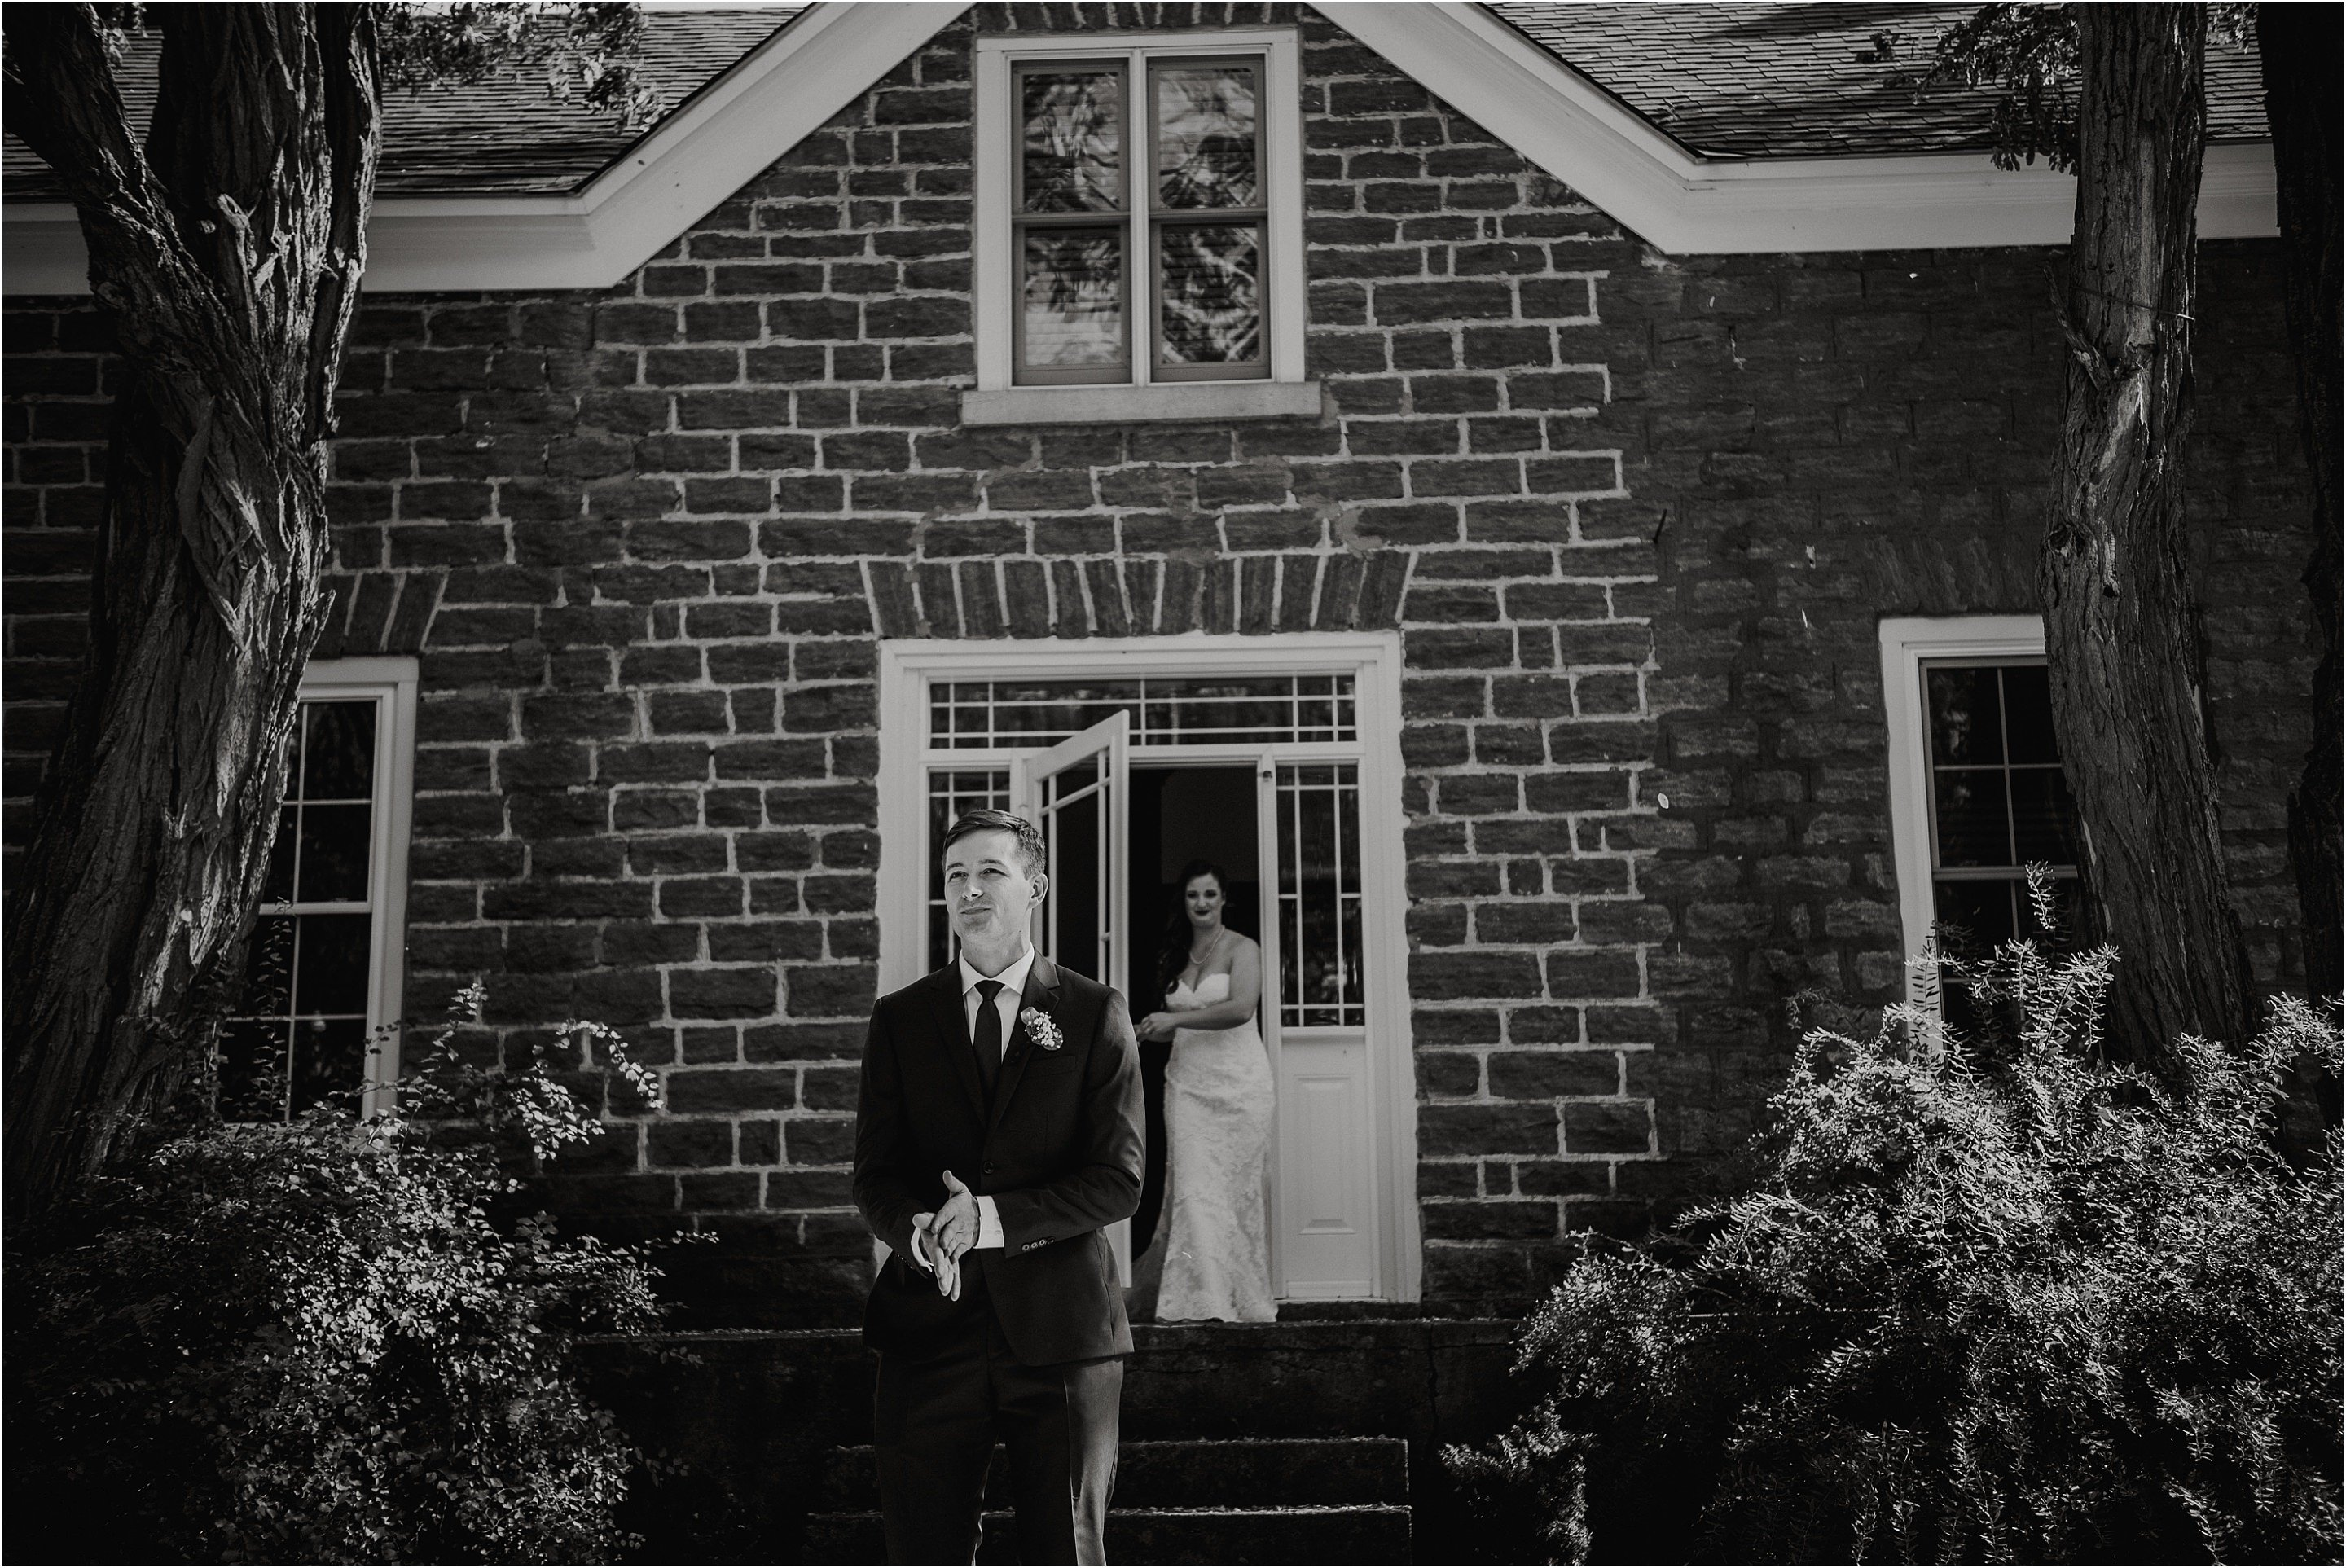 The groom waiting to have his first look at his bride in front of the farm house at Stonefields Estate. Photo by Cindy Lottes Photography